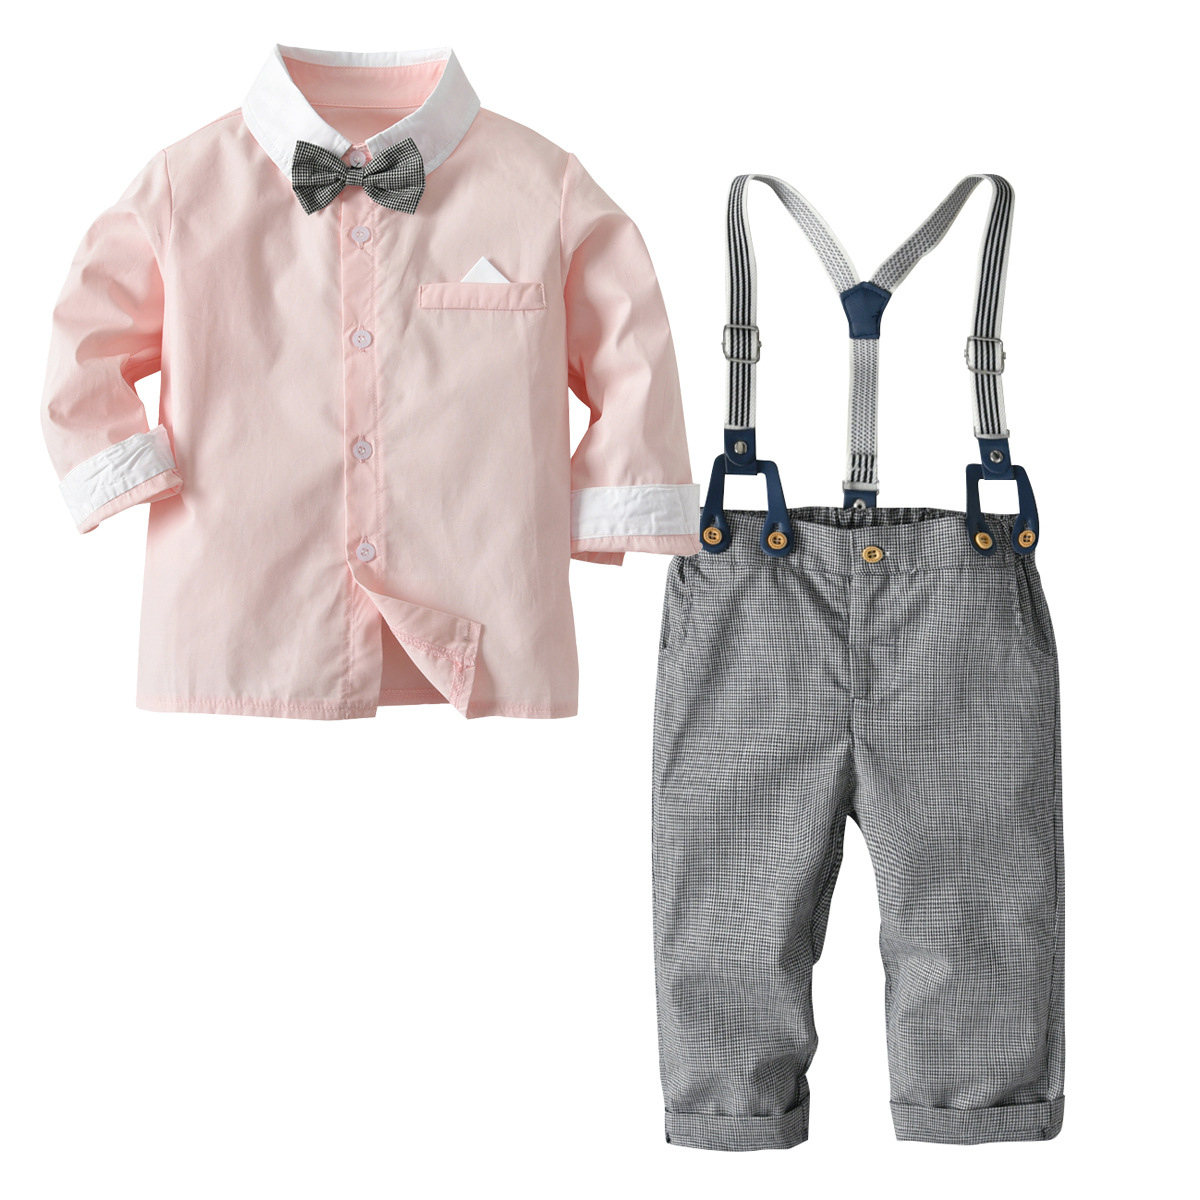 2018 New Autumn Kids Suits Blazers Baby Boys Single Breasted Blouse Overalls Tie Suit Boys Formal Wedding Wear Children Clothing